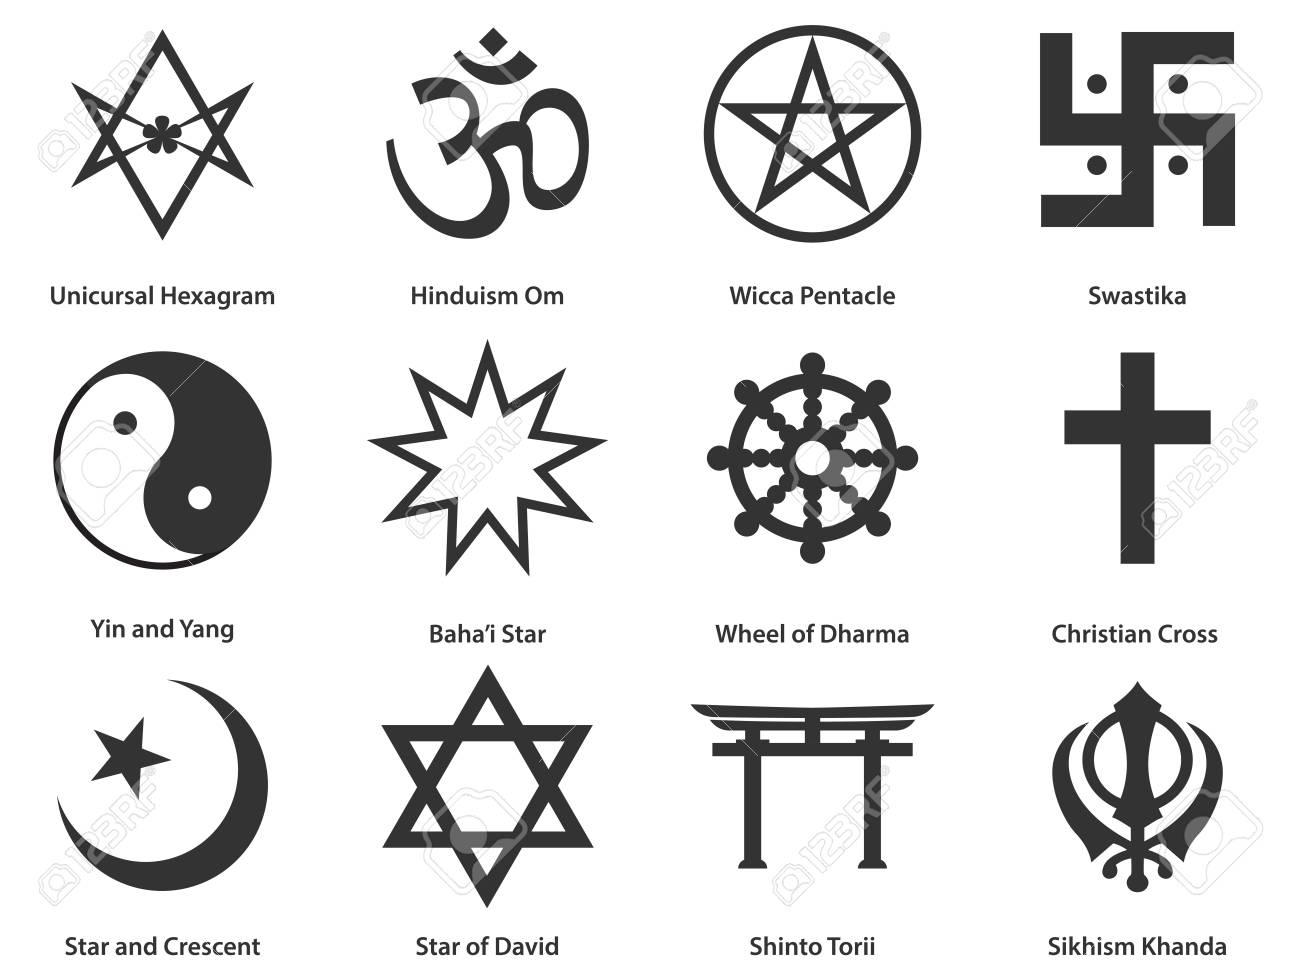 Icon Set Of World Religious Symbols Royalty Free Cliparts, Vectors ...